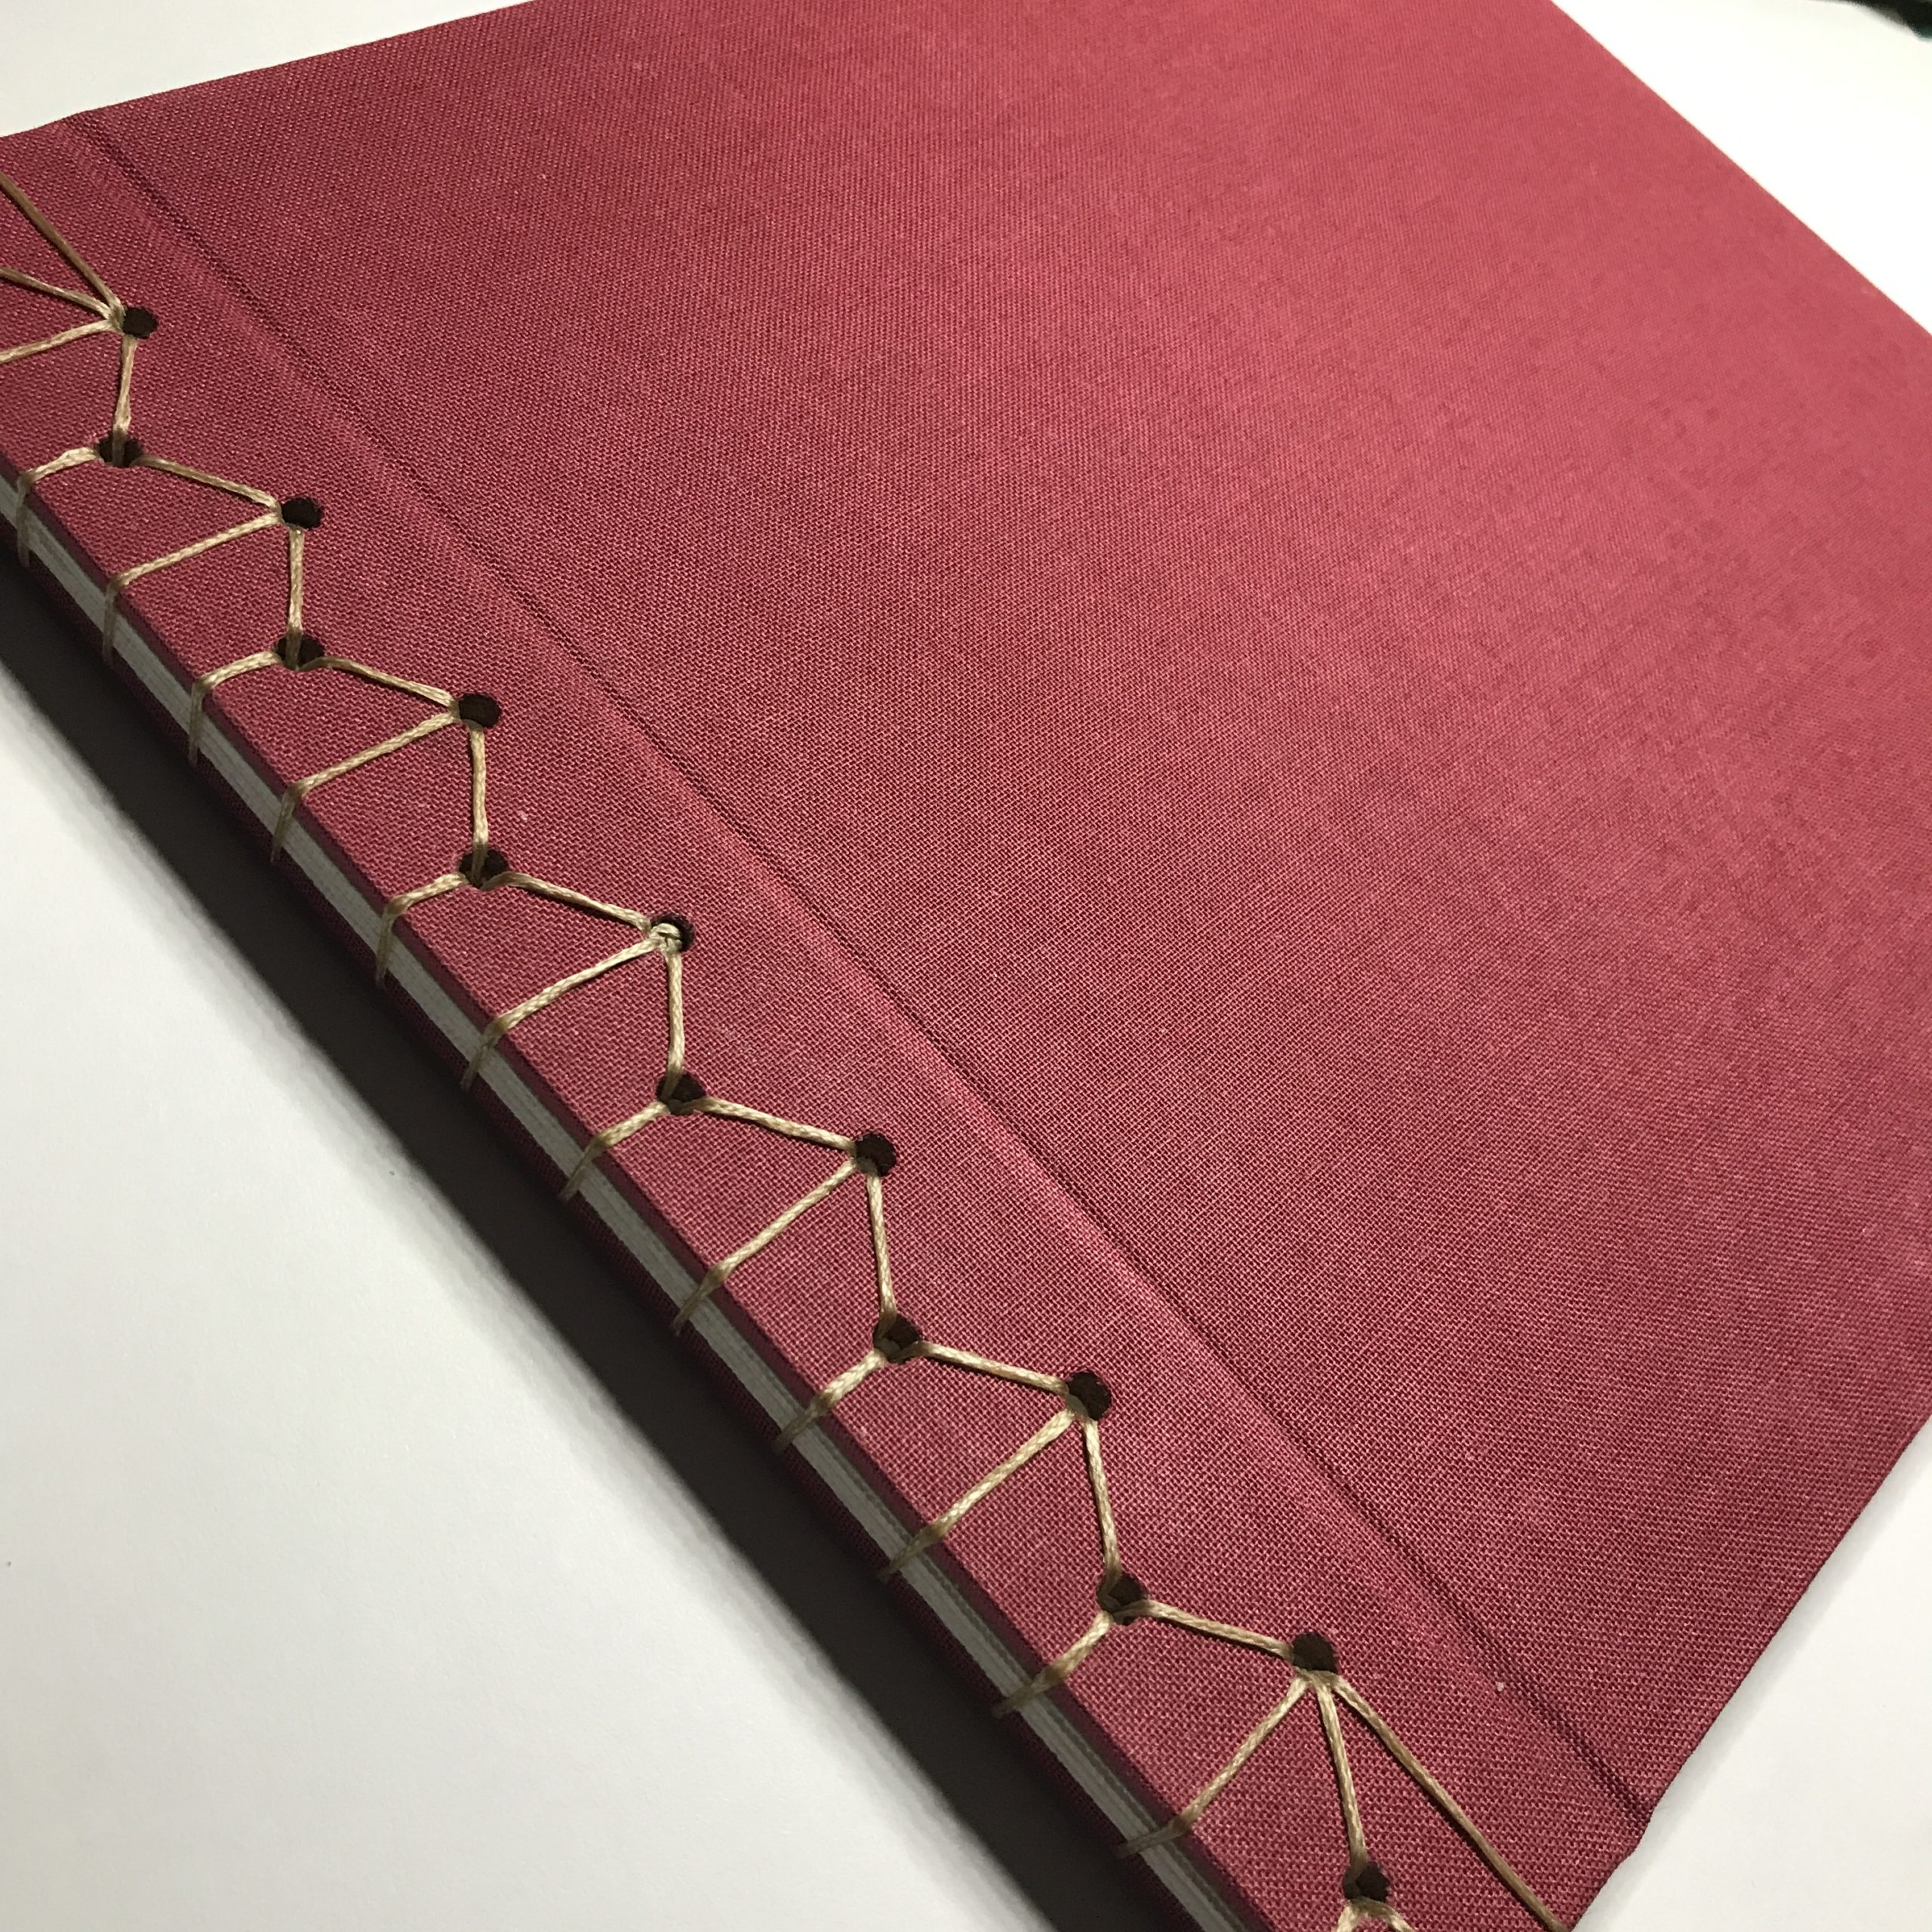 Cover of stab stitch book number 1